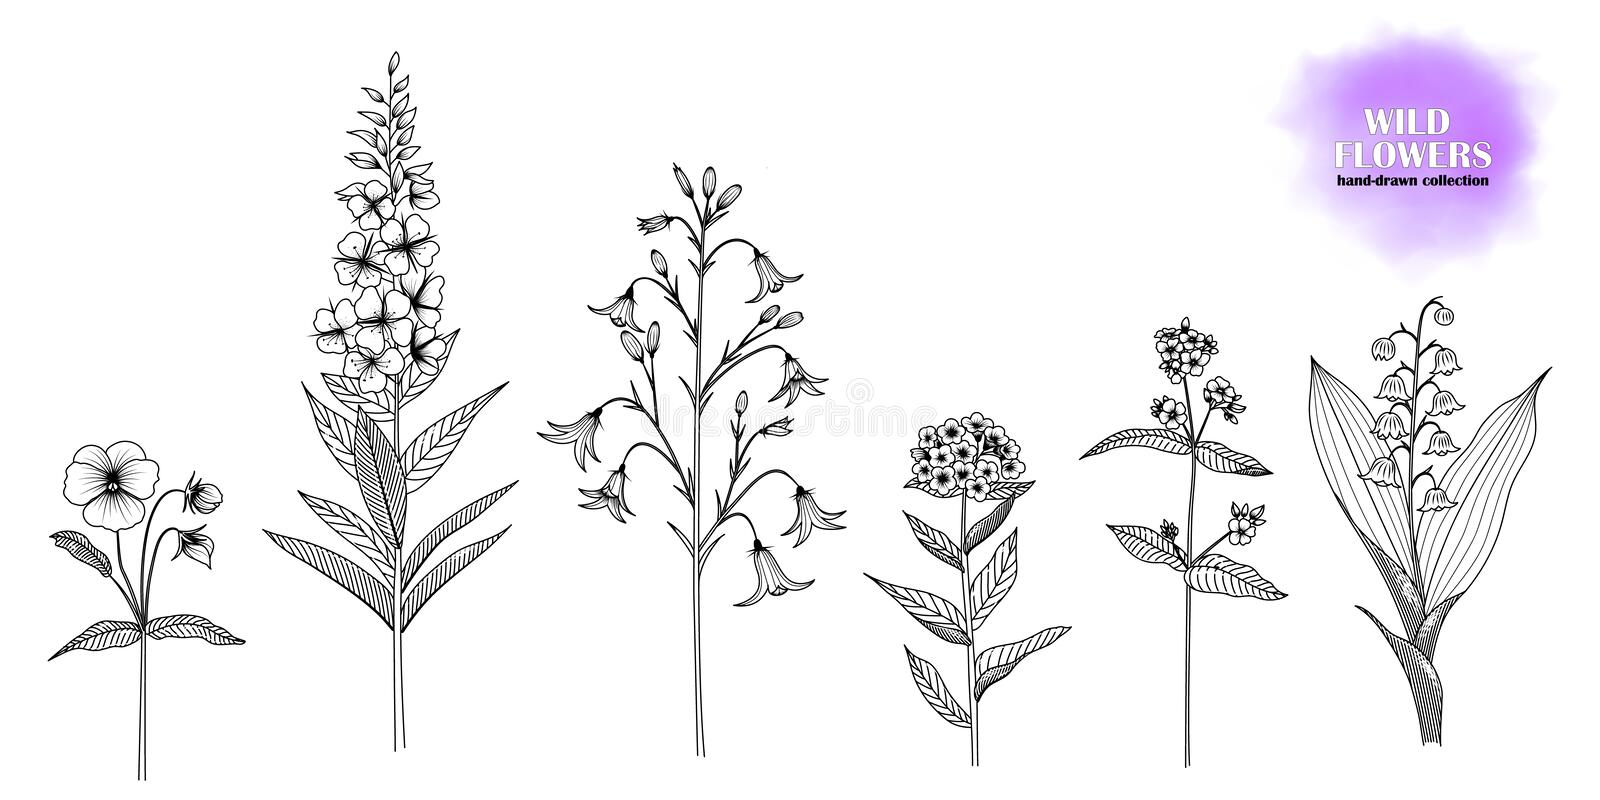 Set of hand-drawn wild flowers. vector illustration